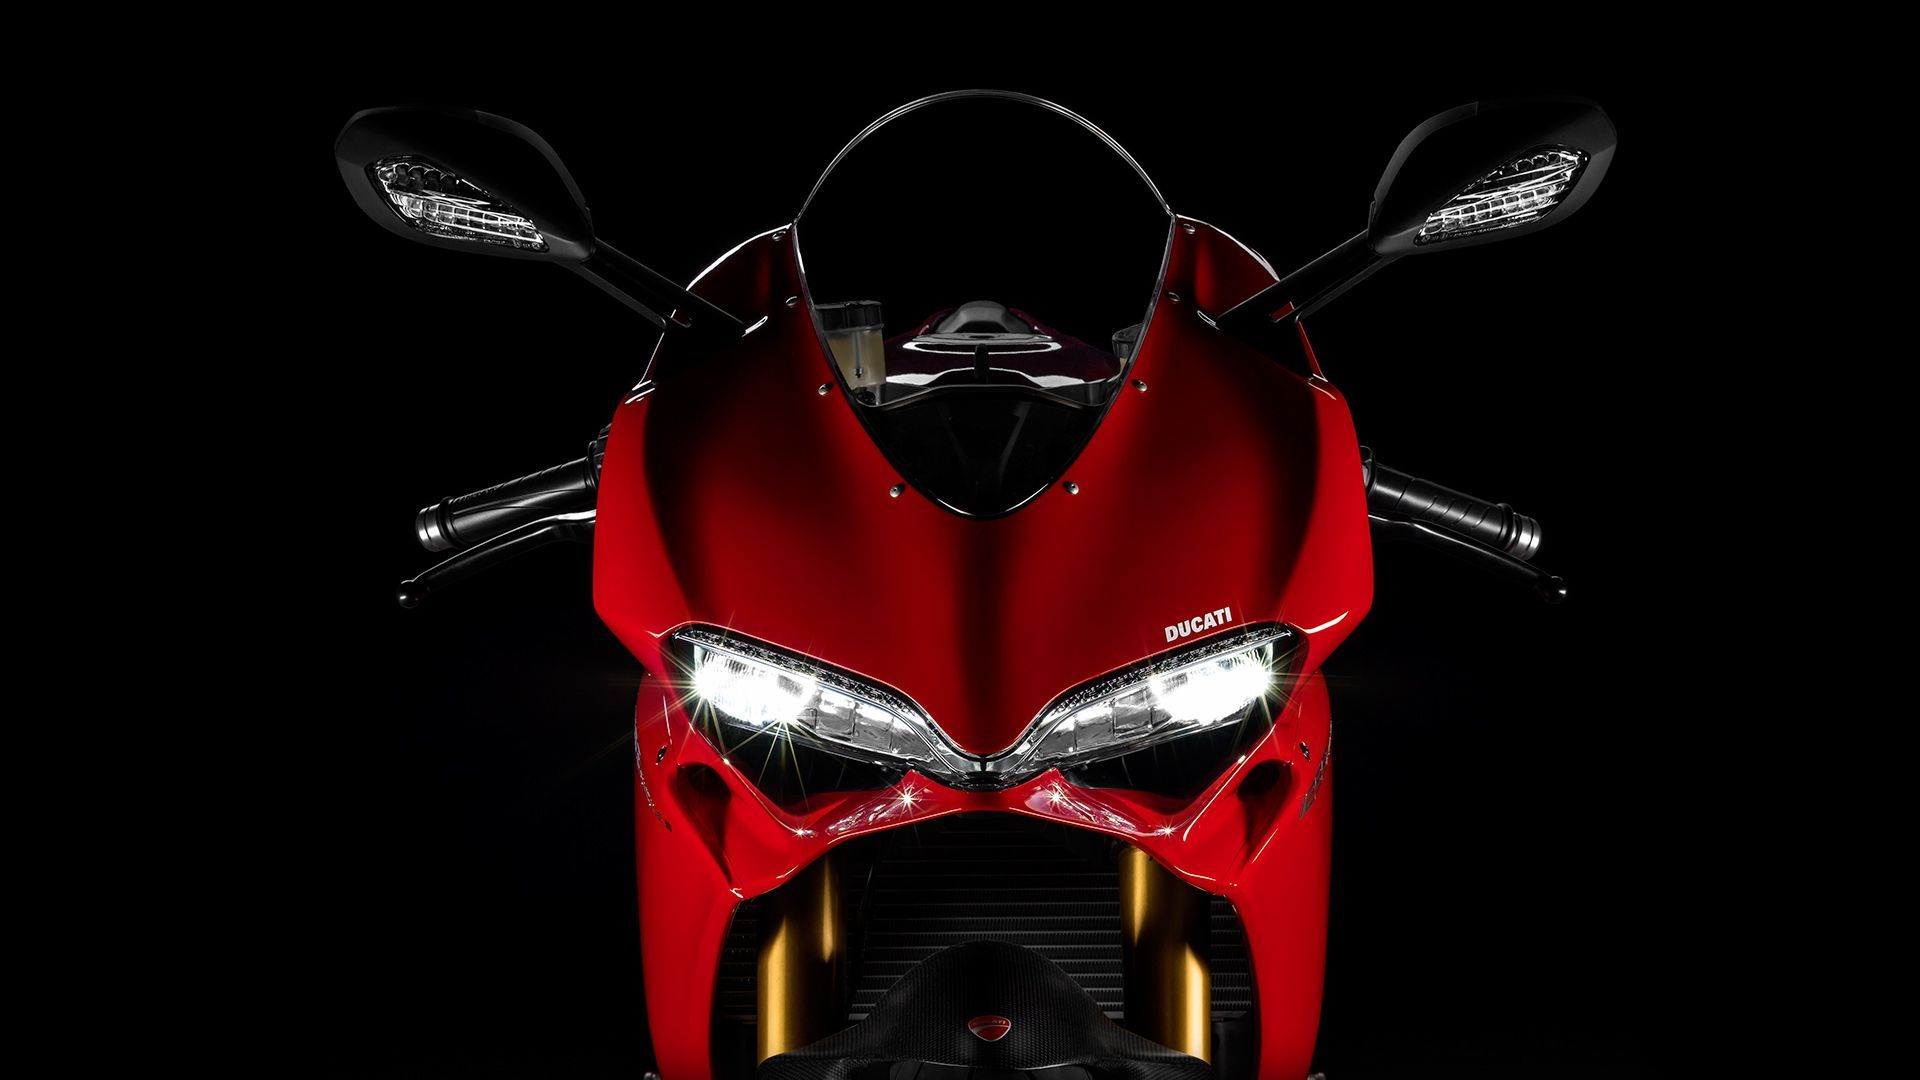 2015 Ducati 1299 Panigale S | 1299 Panigale S - Front Shot